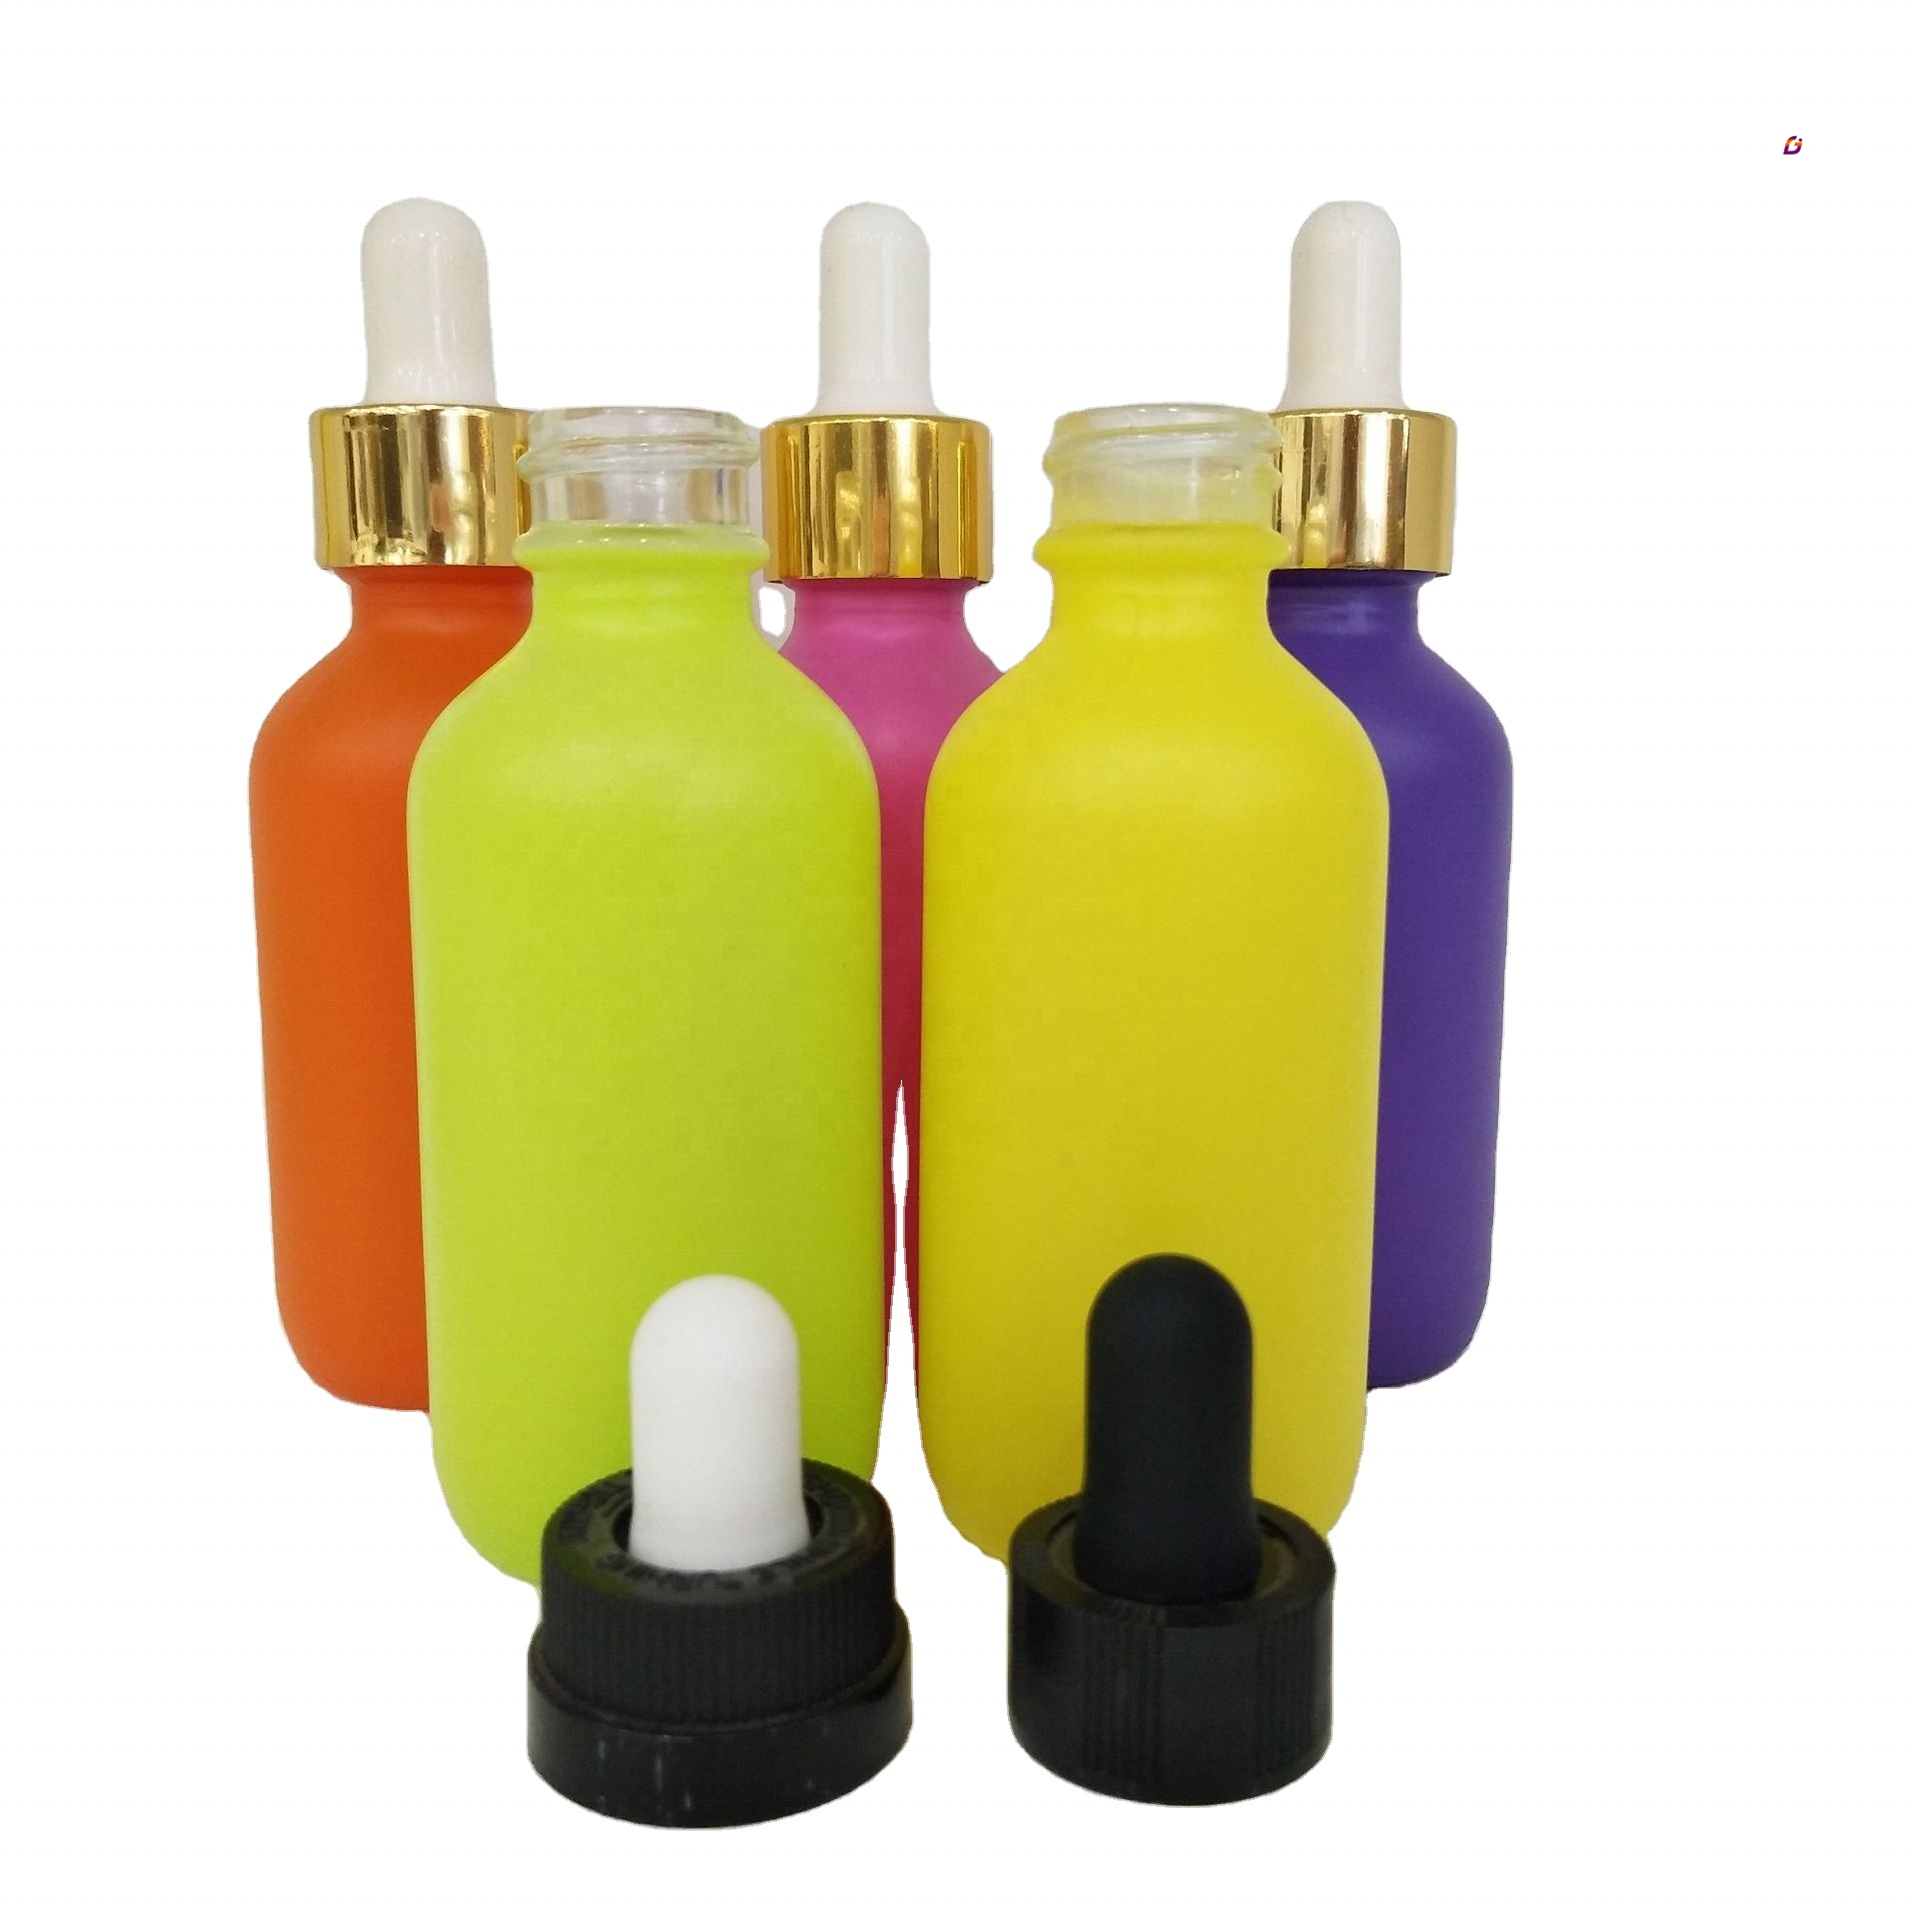 Cosmetics oil cosmetic container glass cylinder dropper bottle pink 2 tone essential oil bottles with dropper 2oz